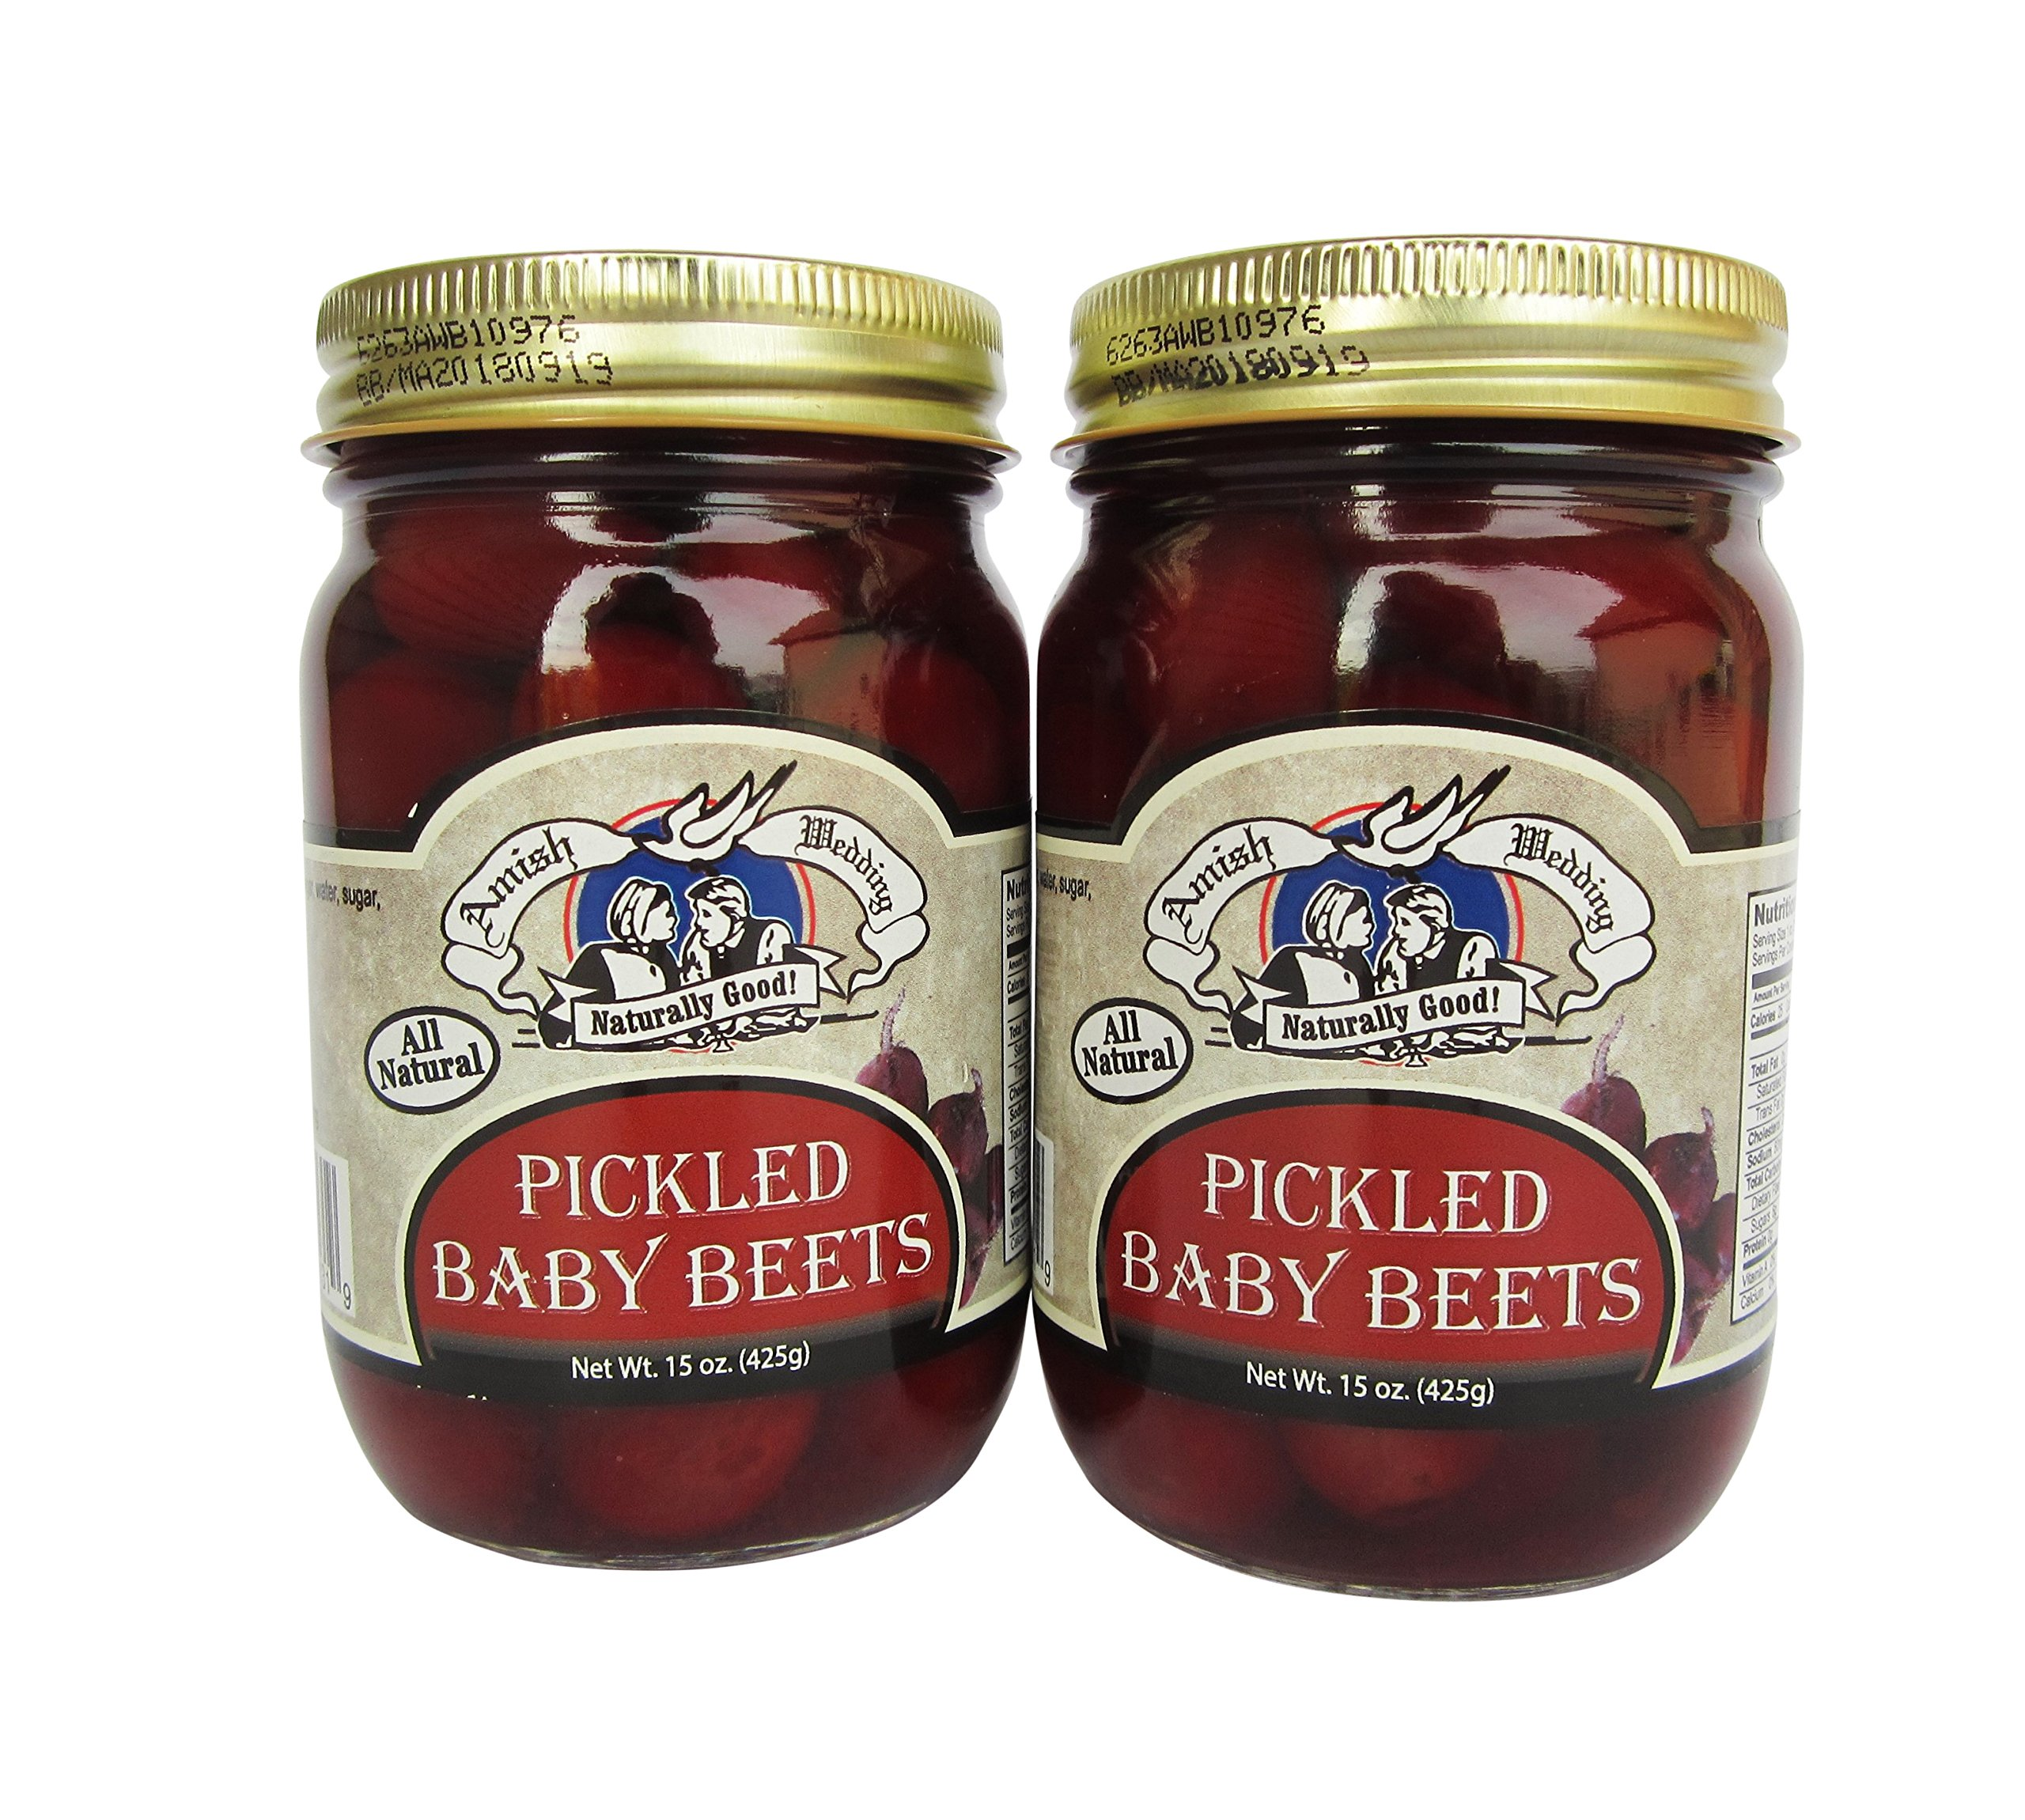 Amish Wedding Foods Pickled Baby Beets 2-15oz Jars